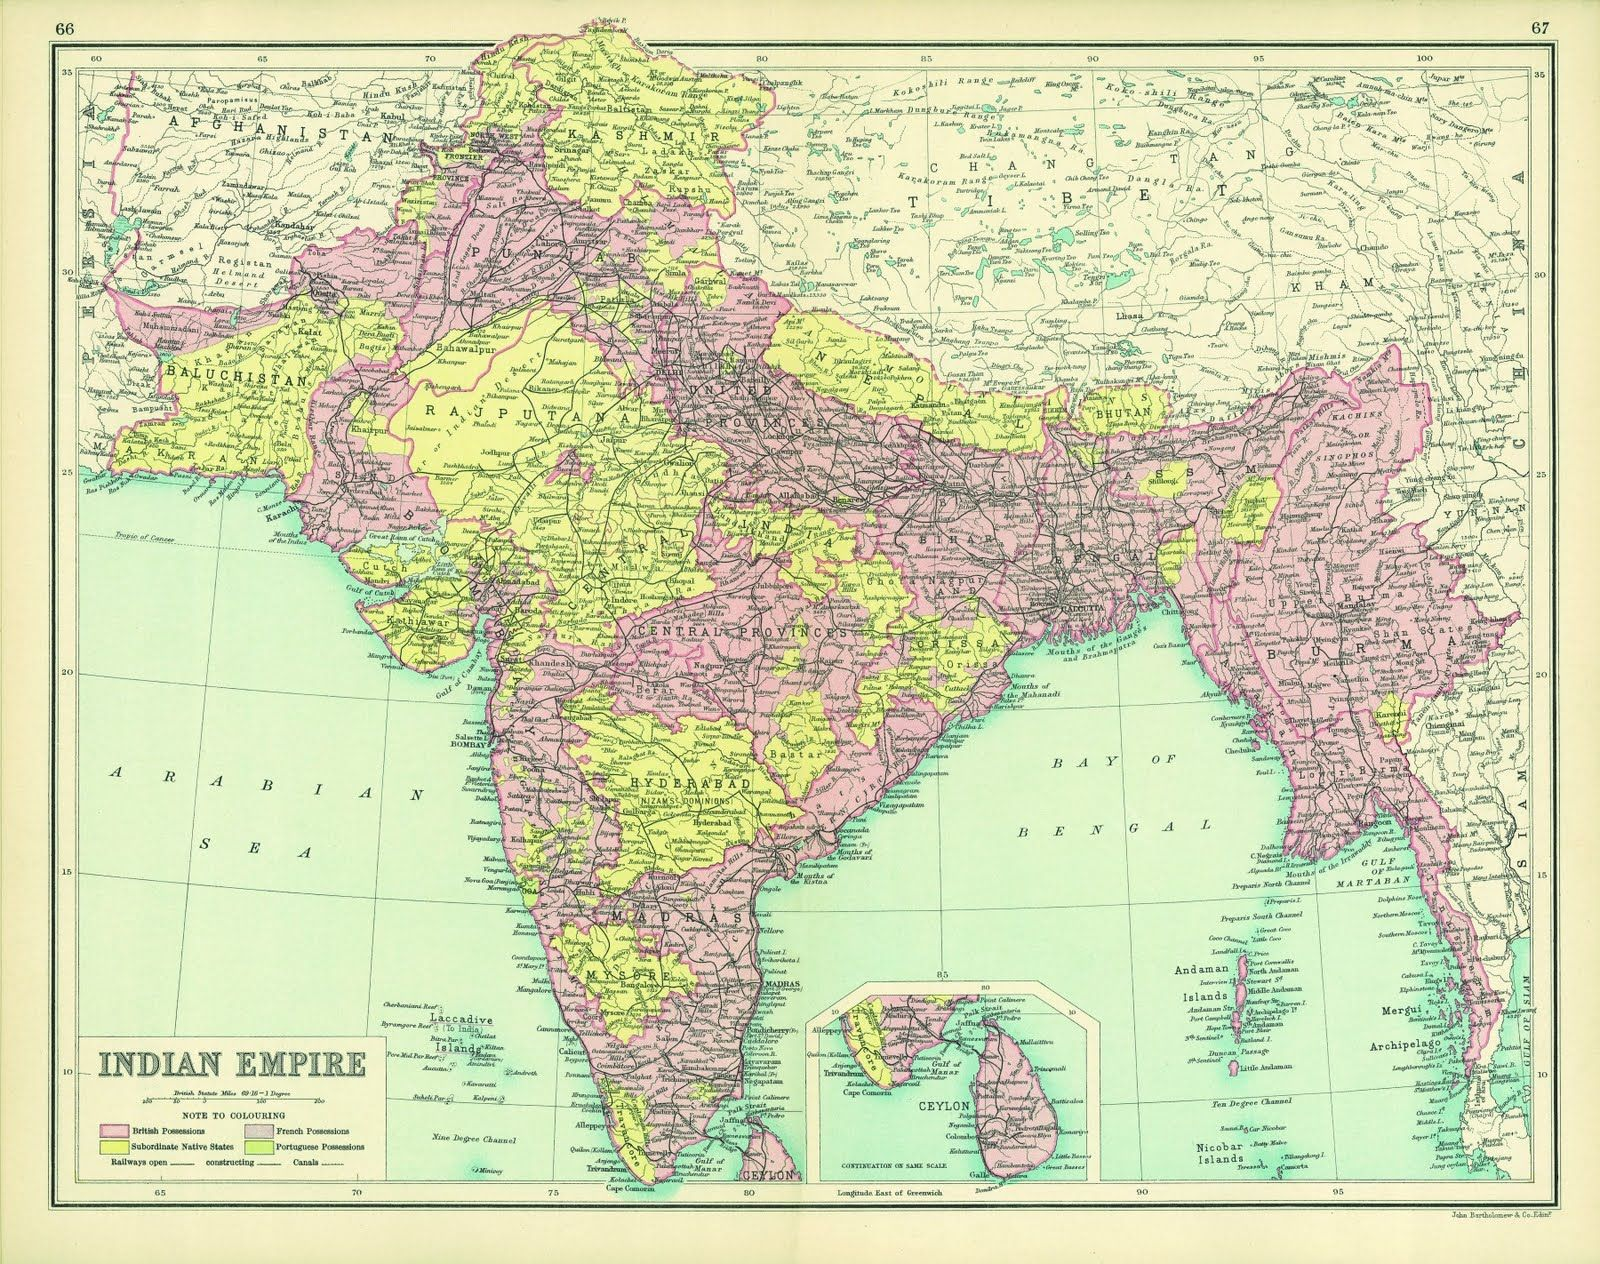 Indian Empire 1914 Map, Historical maps, India map